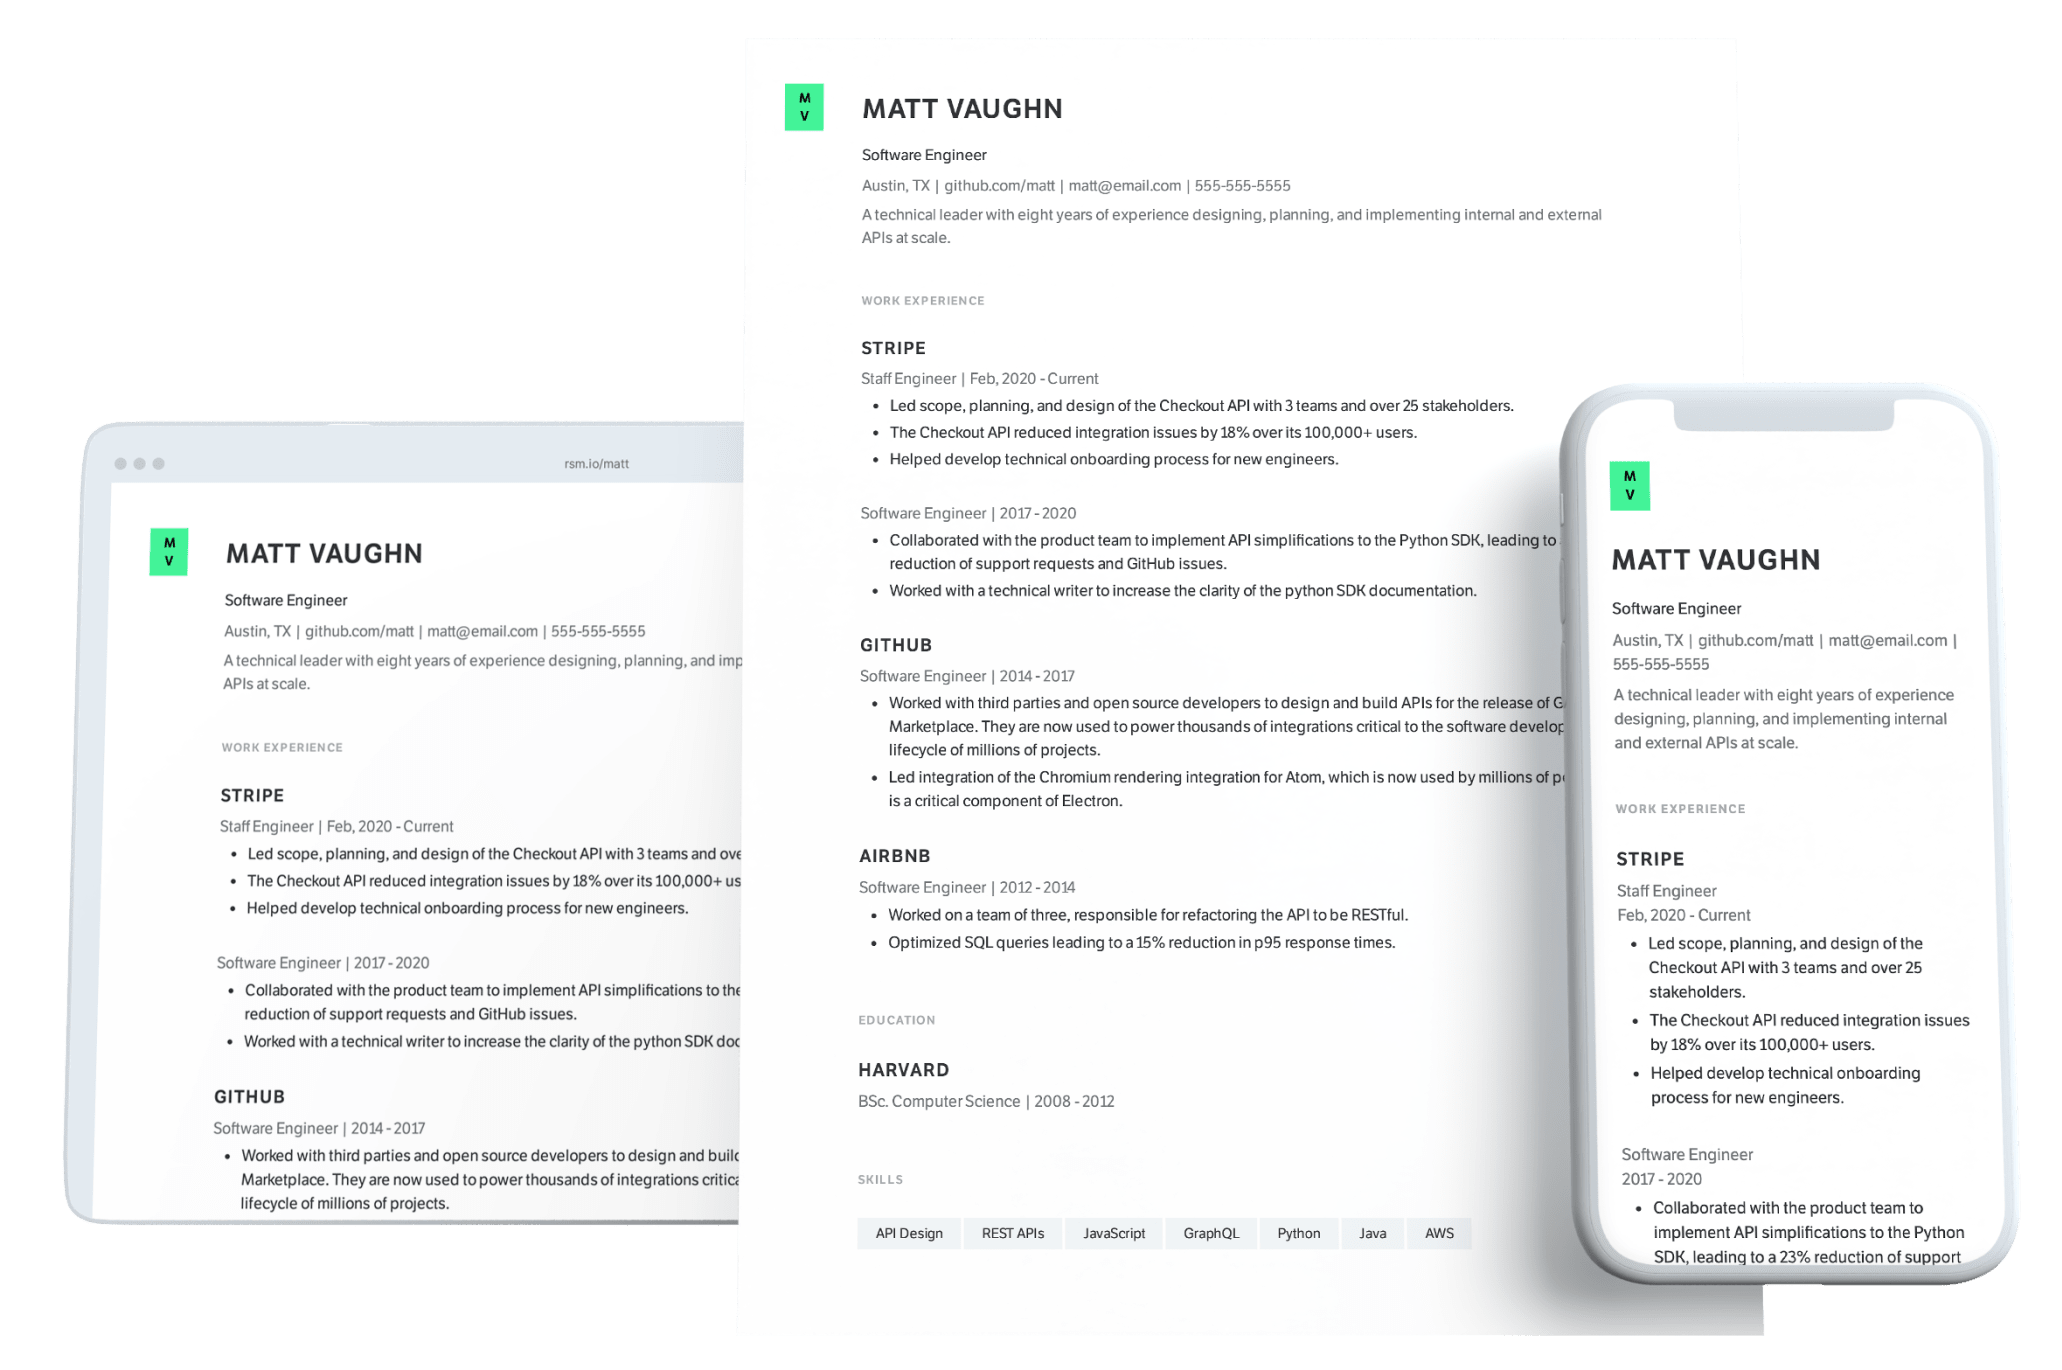 Software Engineer PDF resume template and web resume